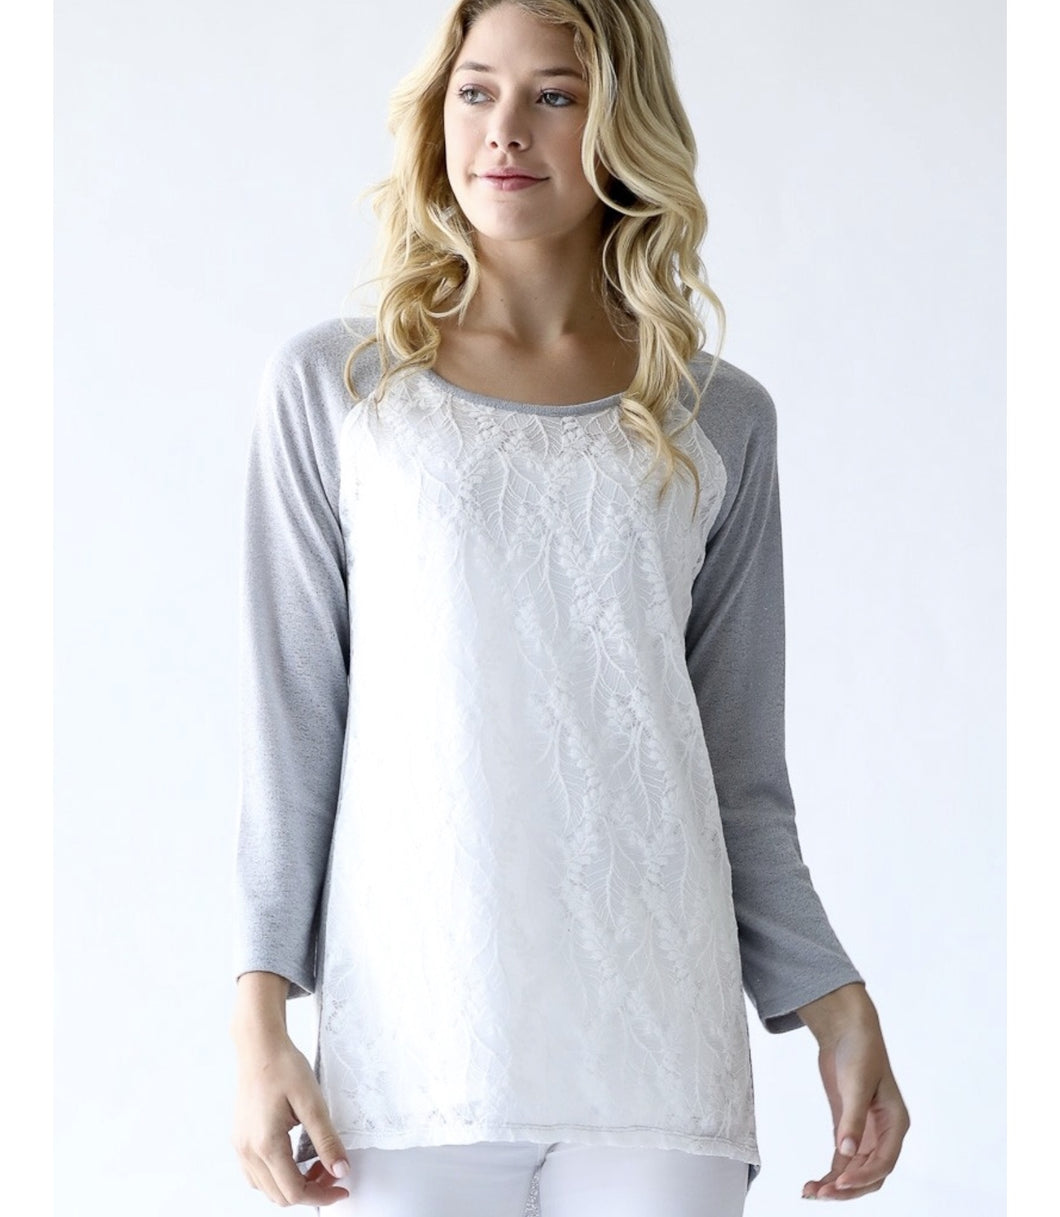 Grey Sweater with Lace Overlay